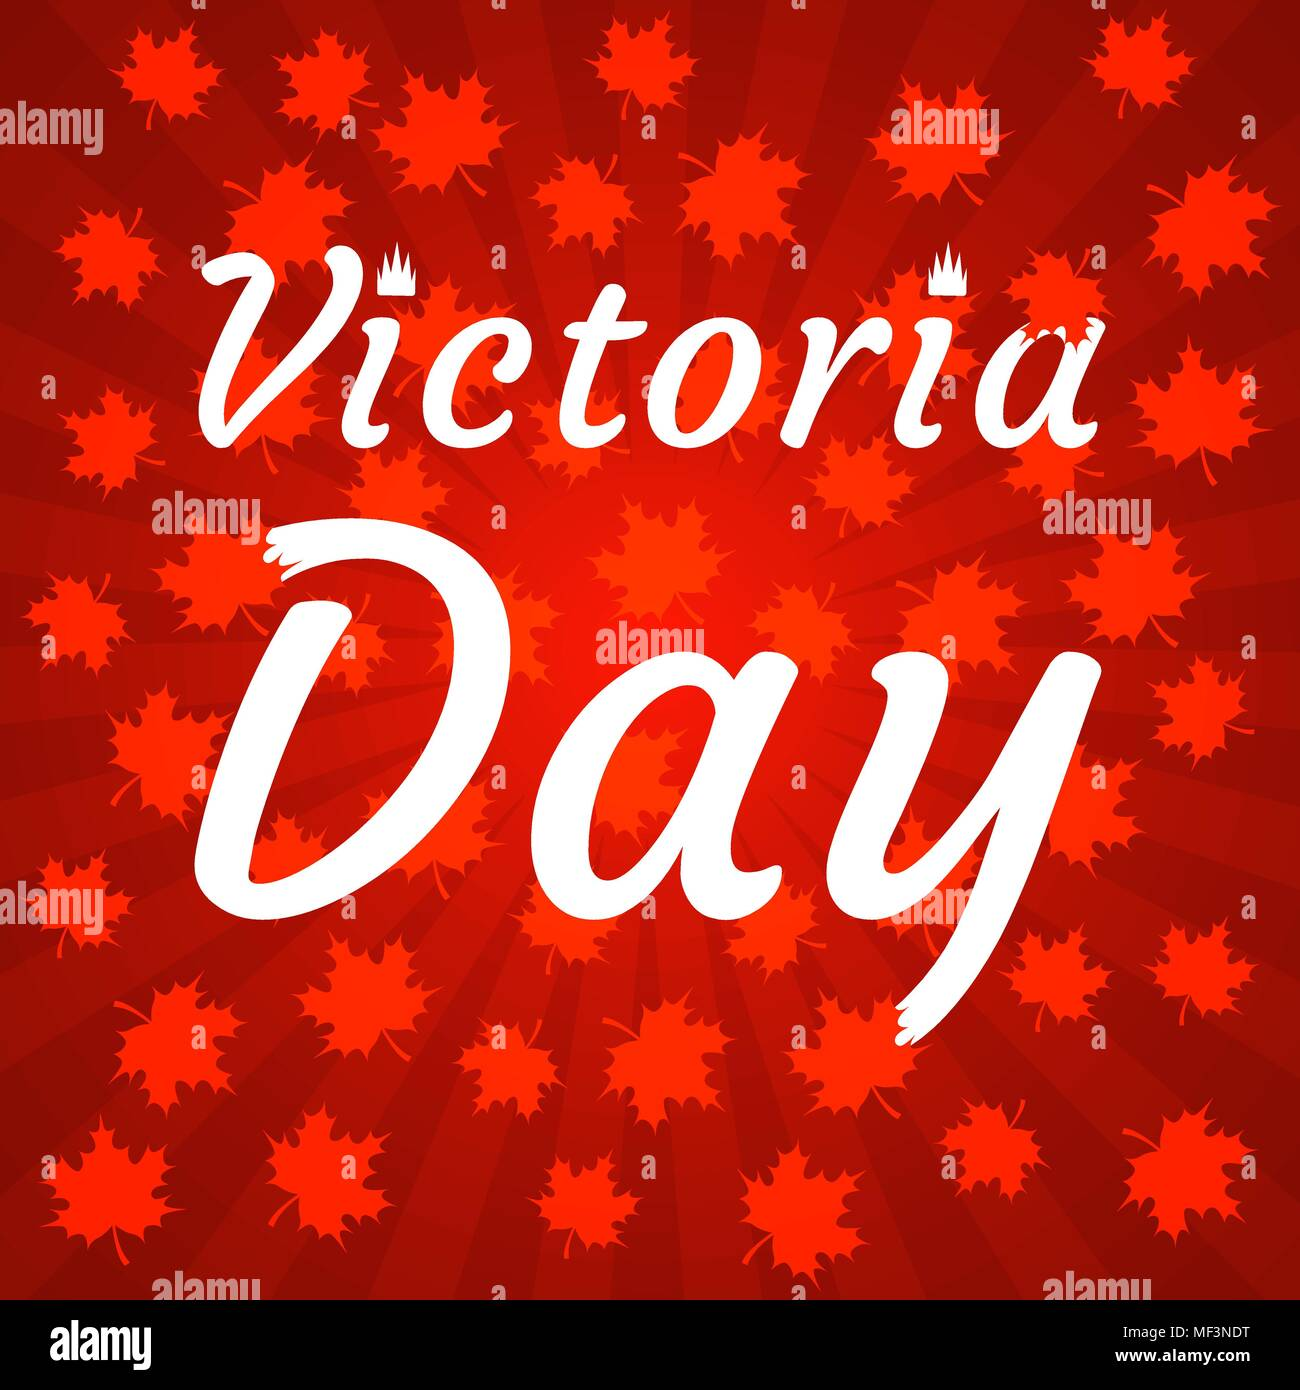 Concept Of Happy Victoria Day In Canada Red Shades Rays From The